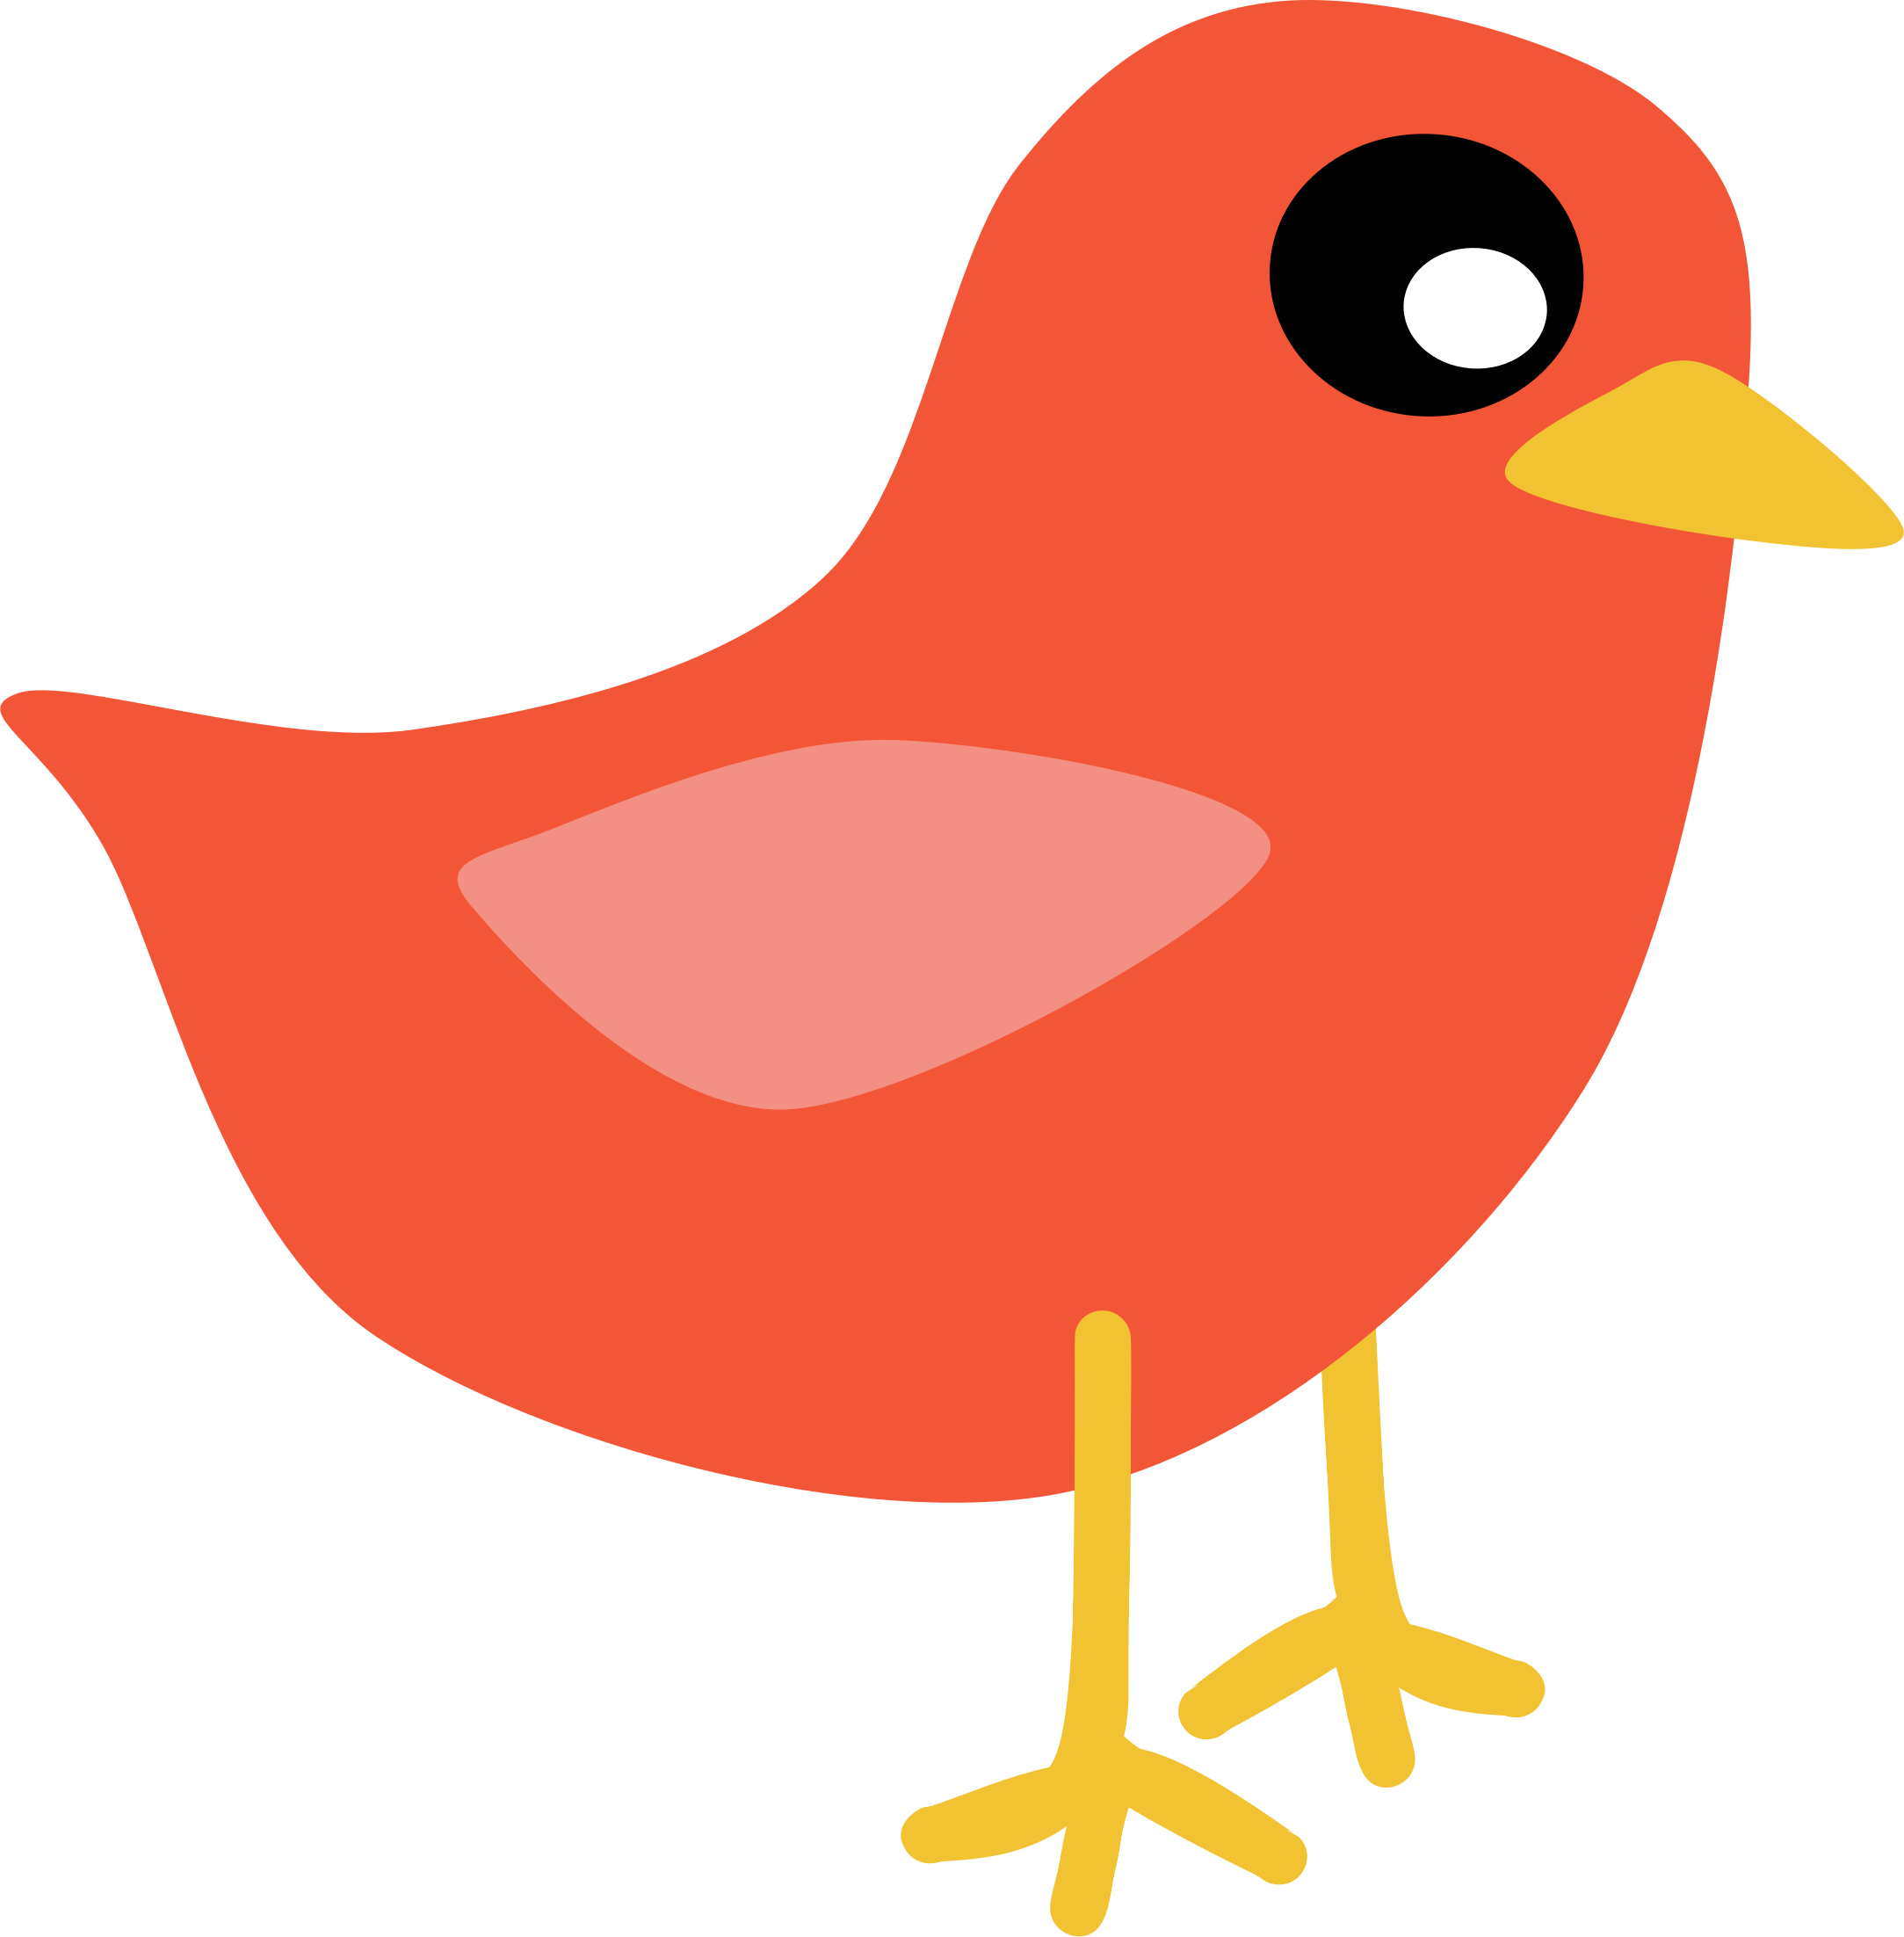 Festival clipart cultural event. Red bird by scout